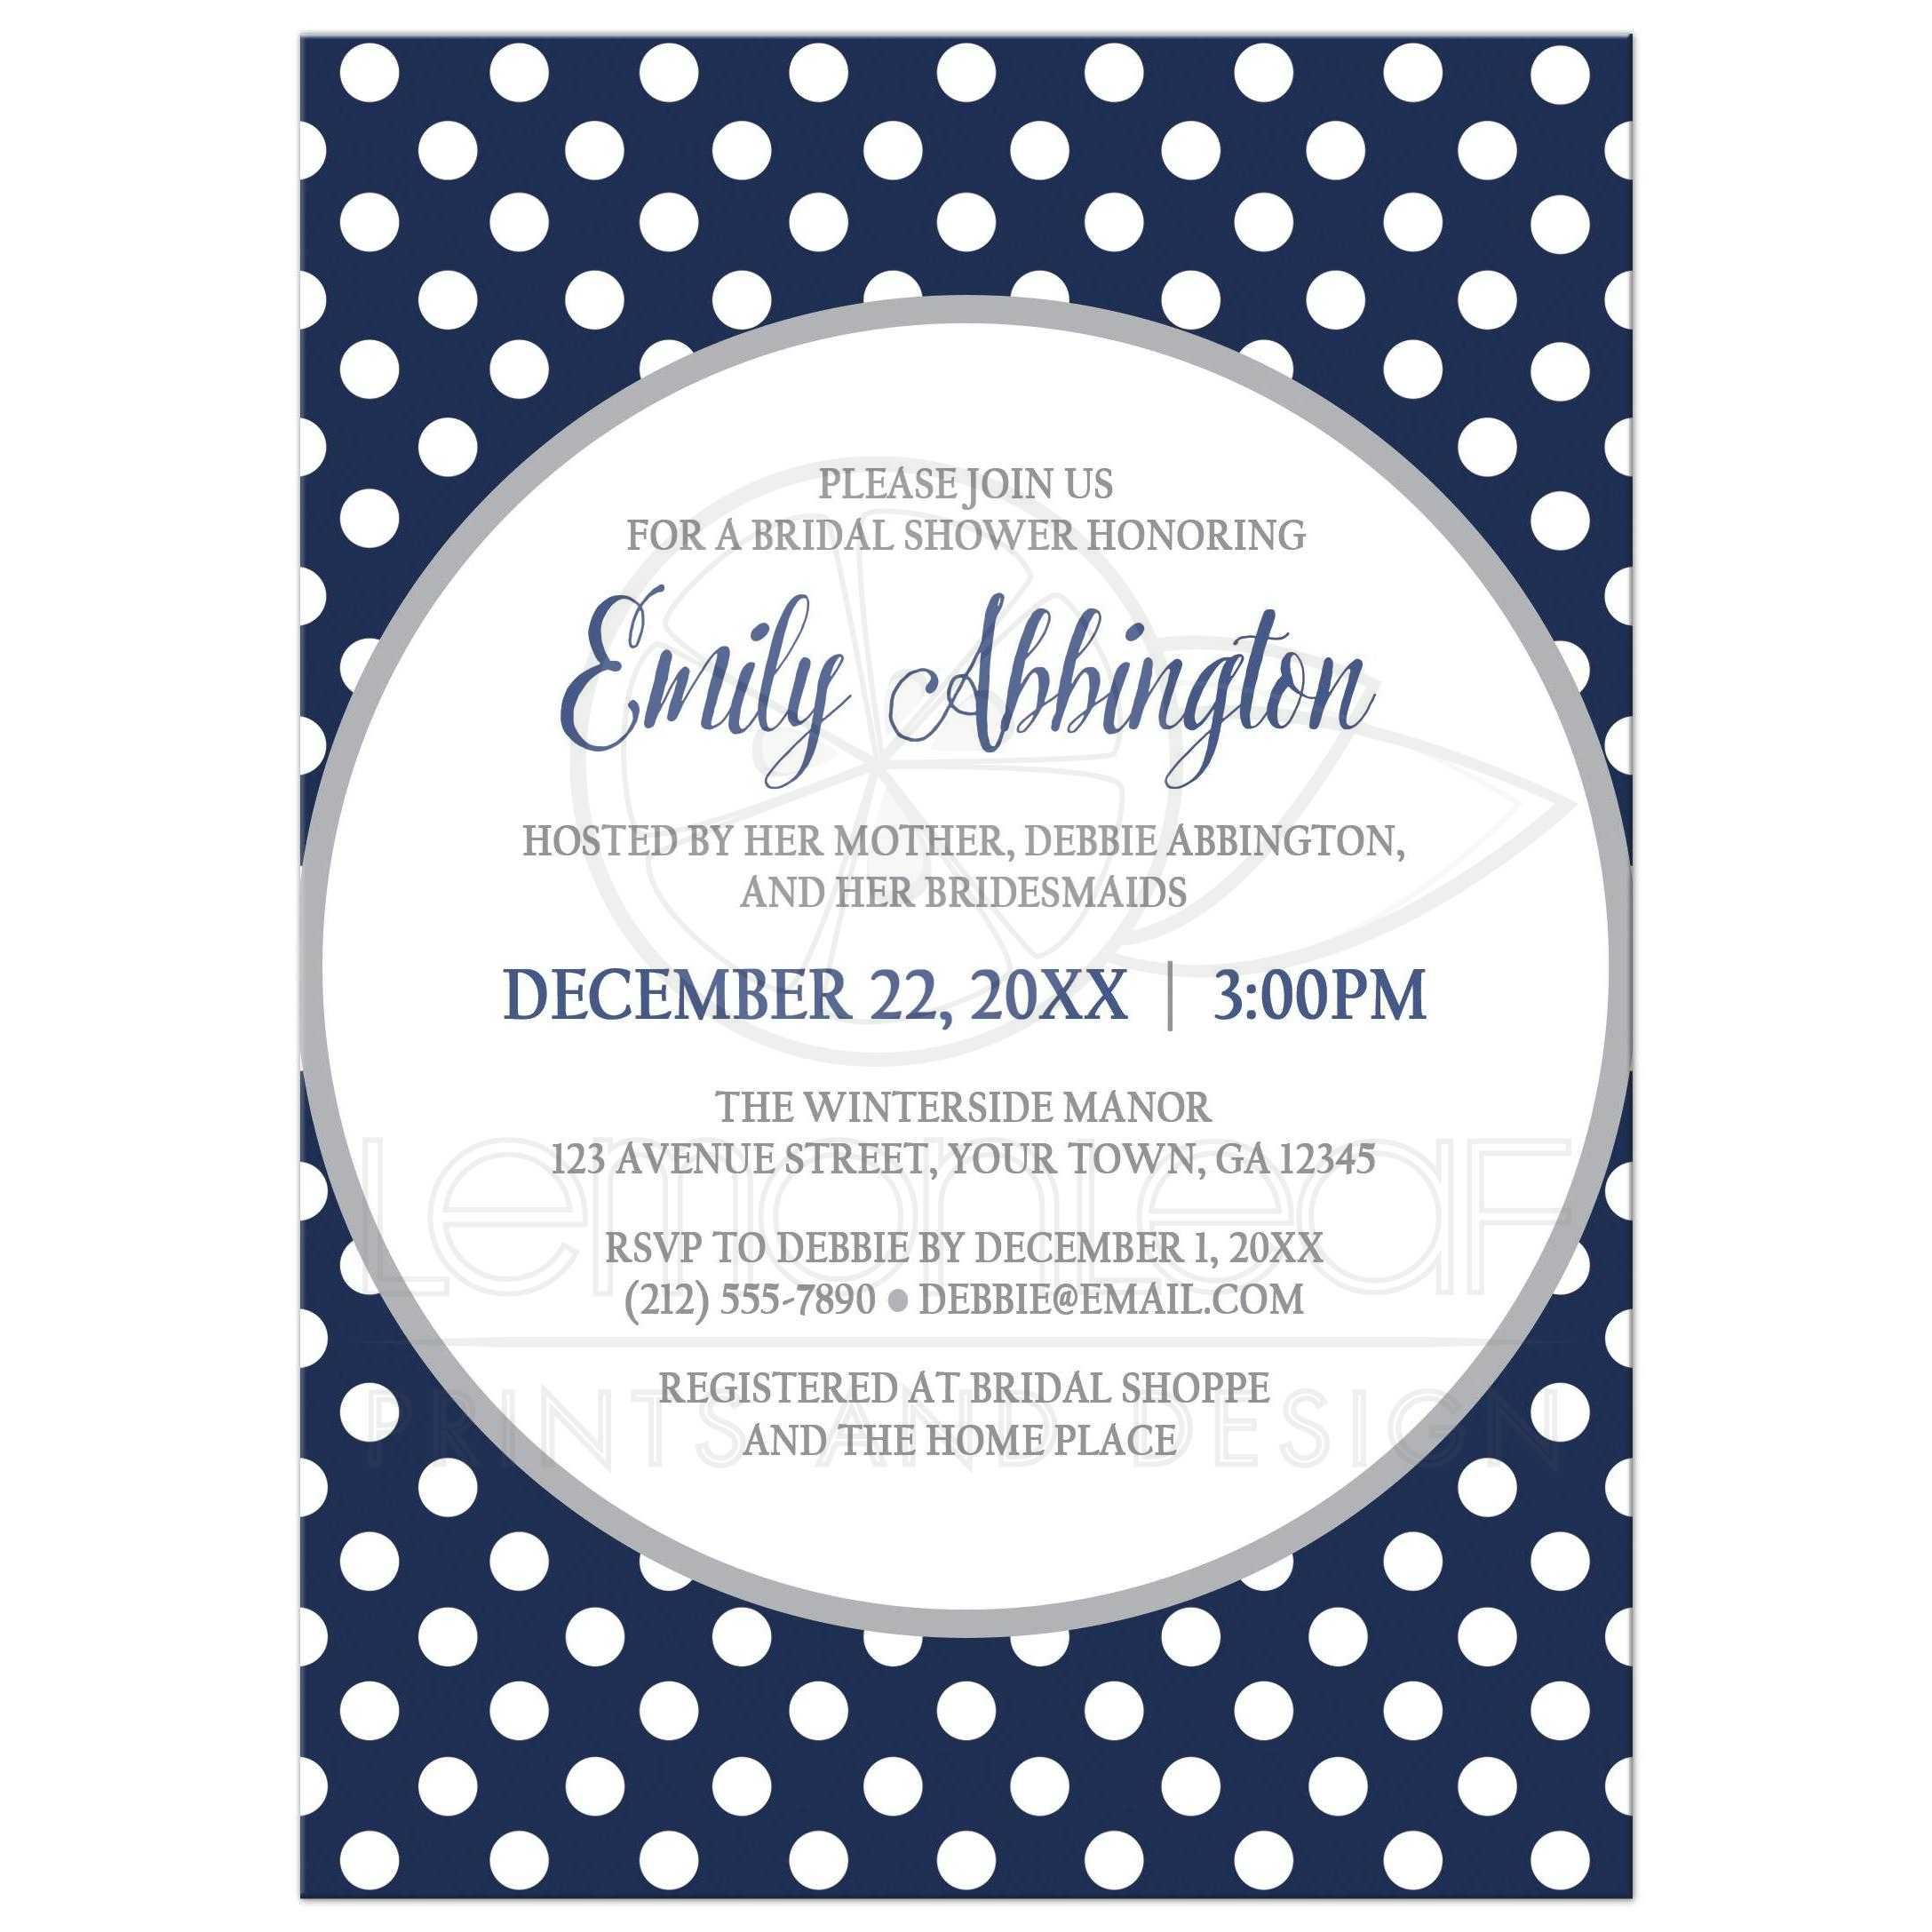 Bridal shower invitations gray navy blue polka dot filmwisefo